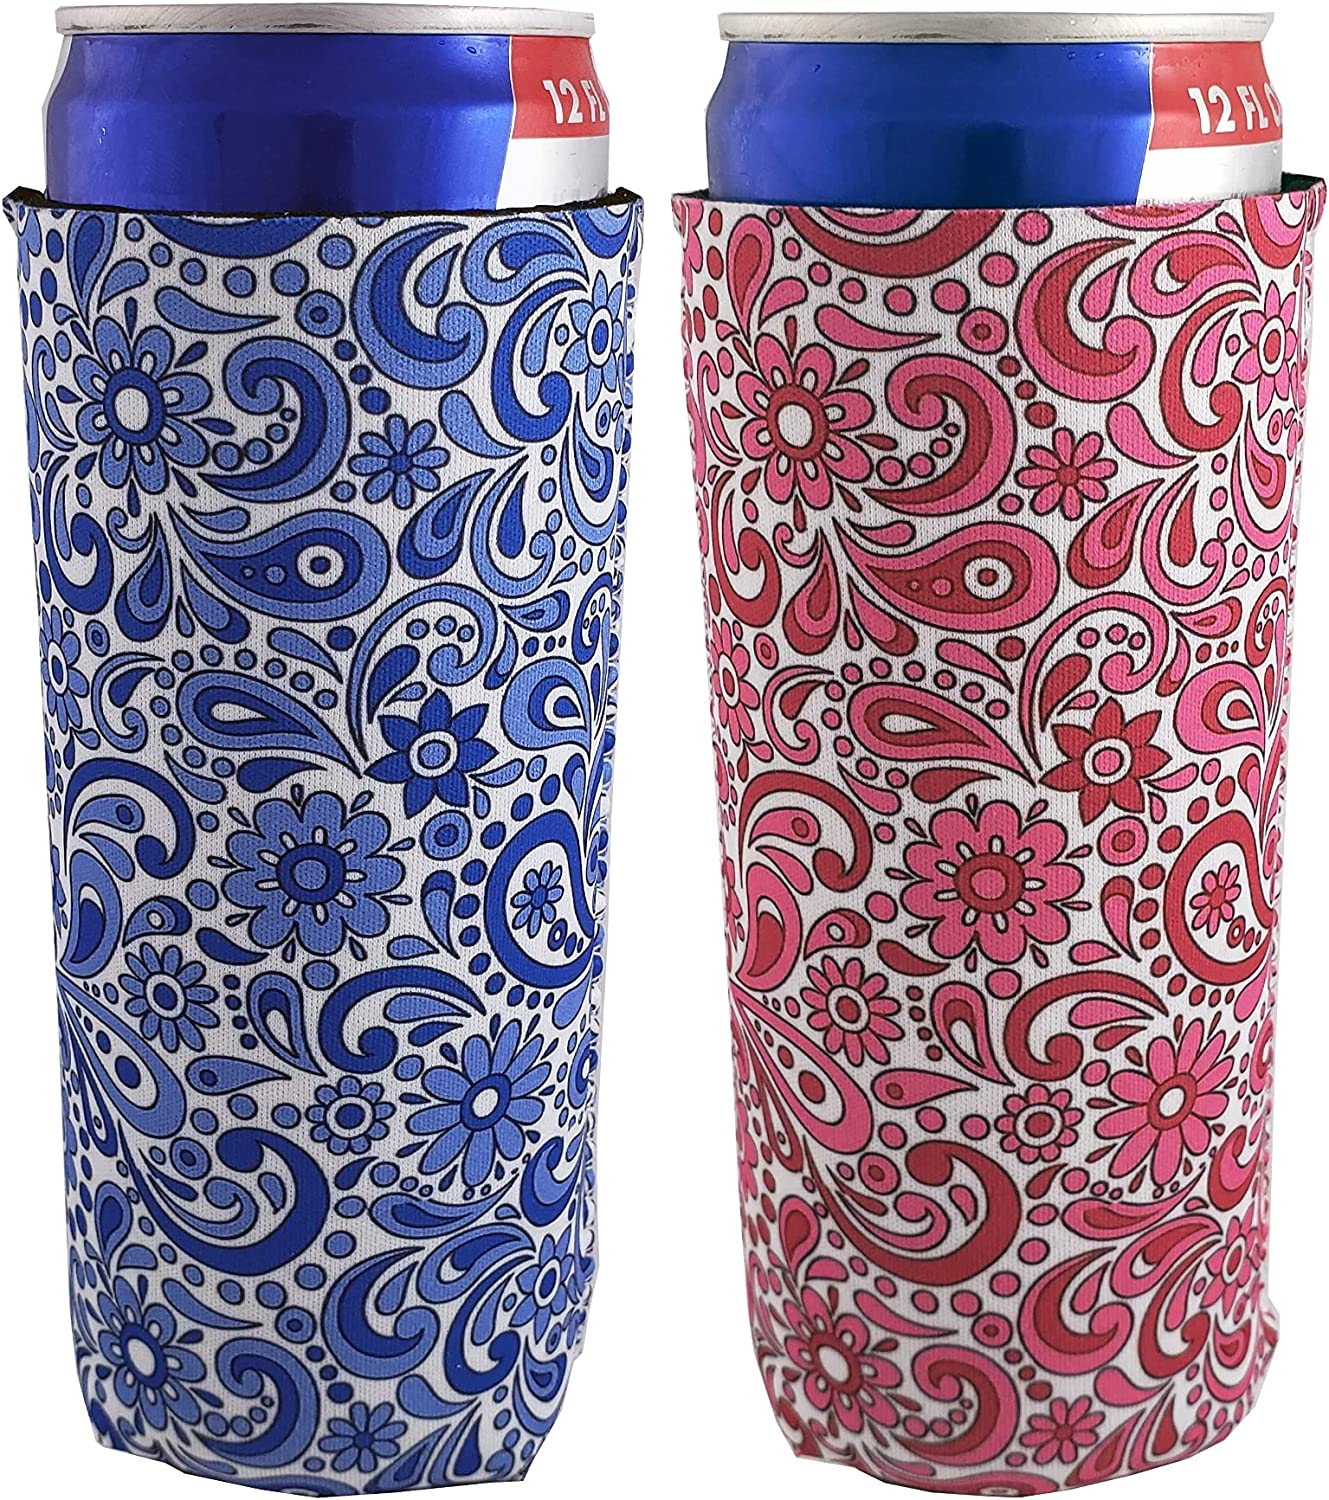 Cozose Slim Can Cooler Sleeves for White Claw & Hard Seltzer, Tall Can Insulator Coolies, Insulated Drink Holders, 2-pack, Floral